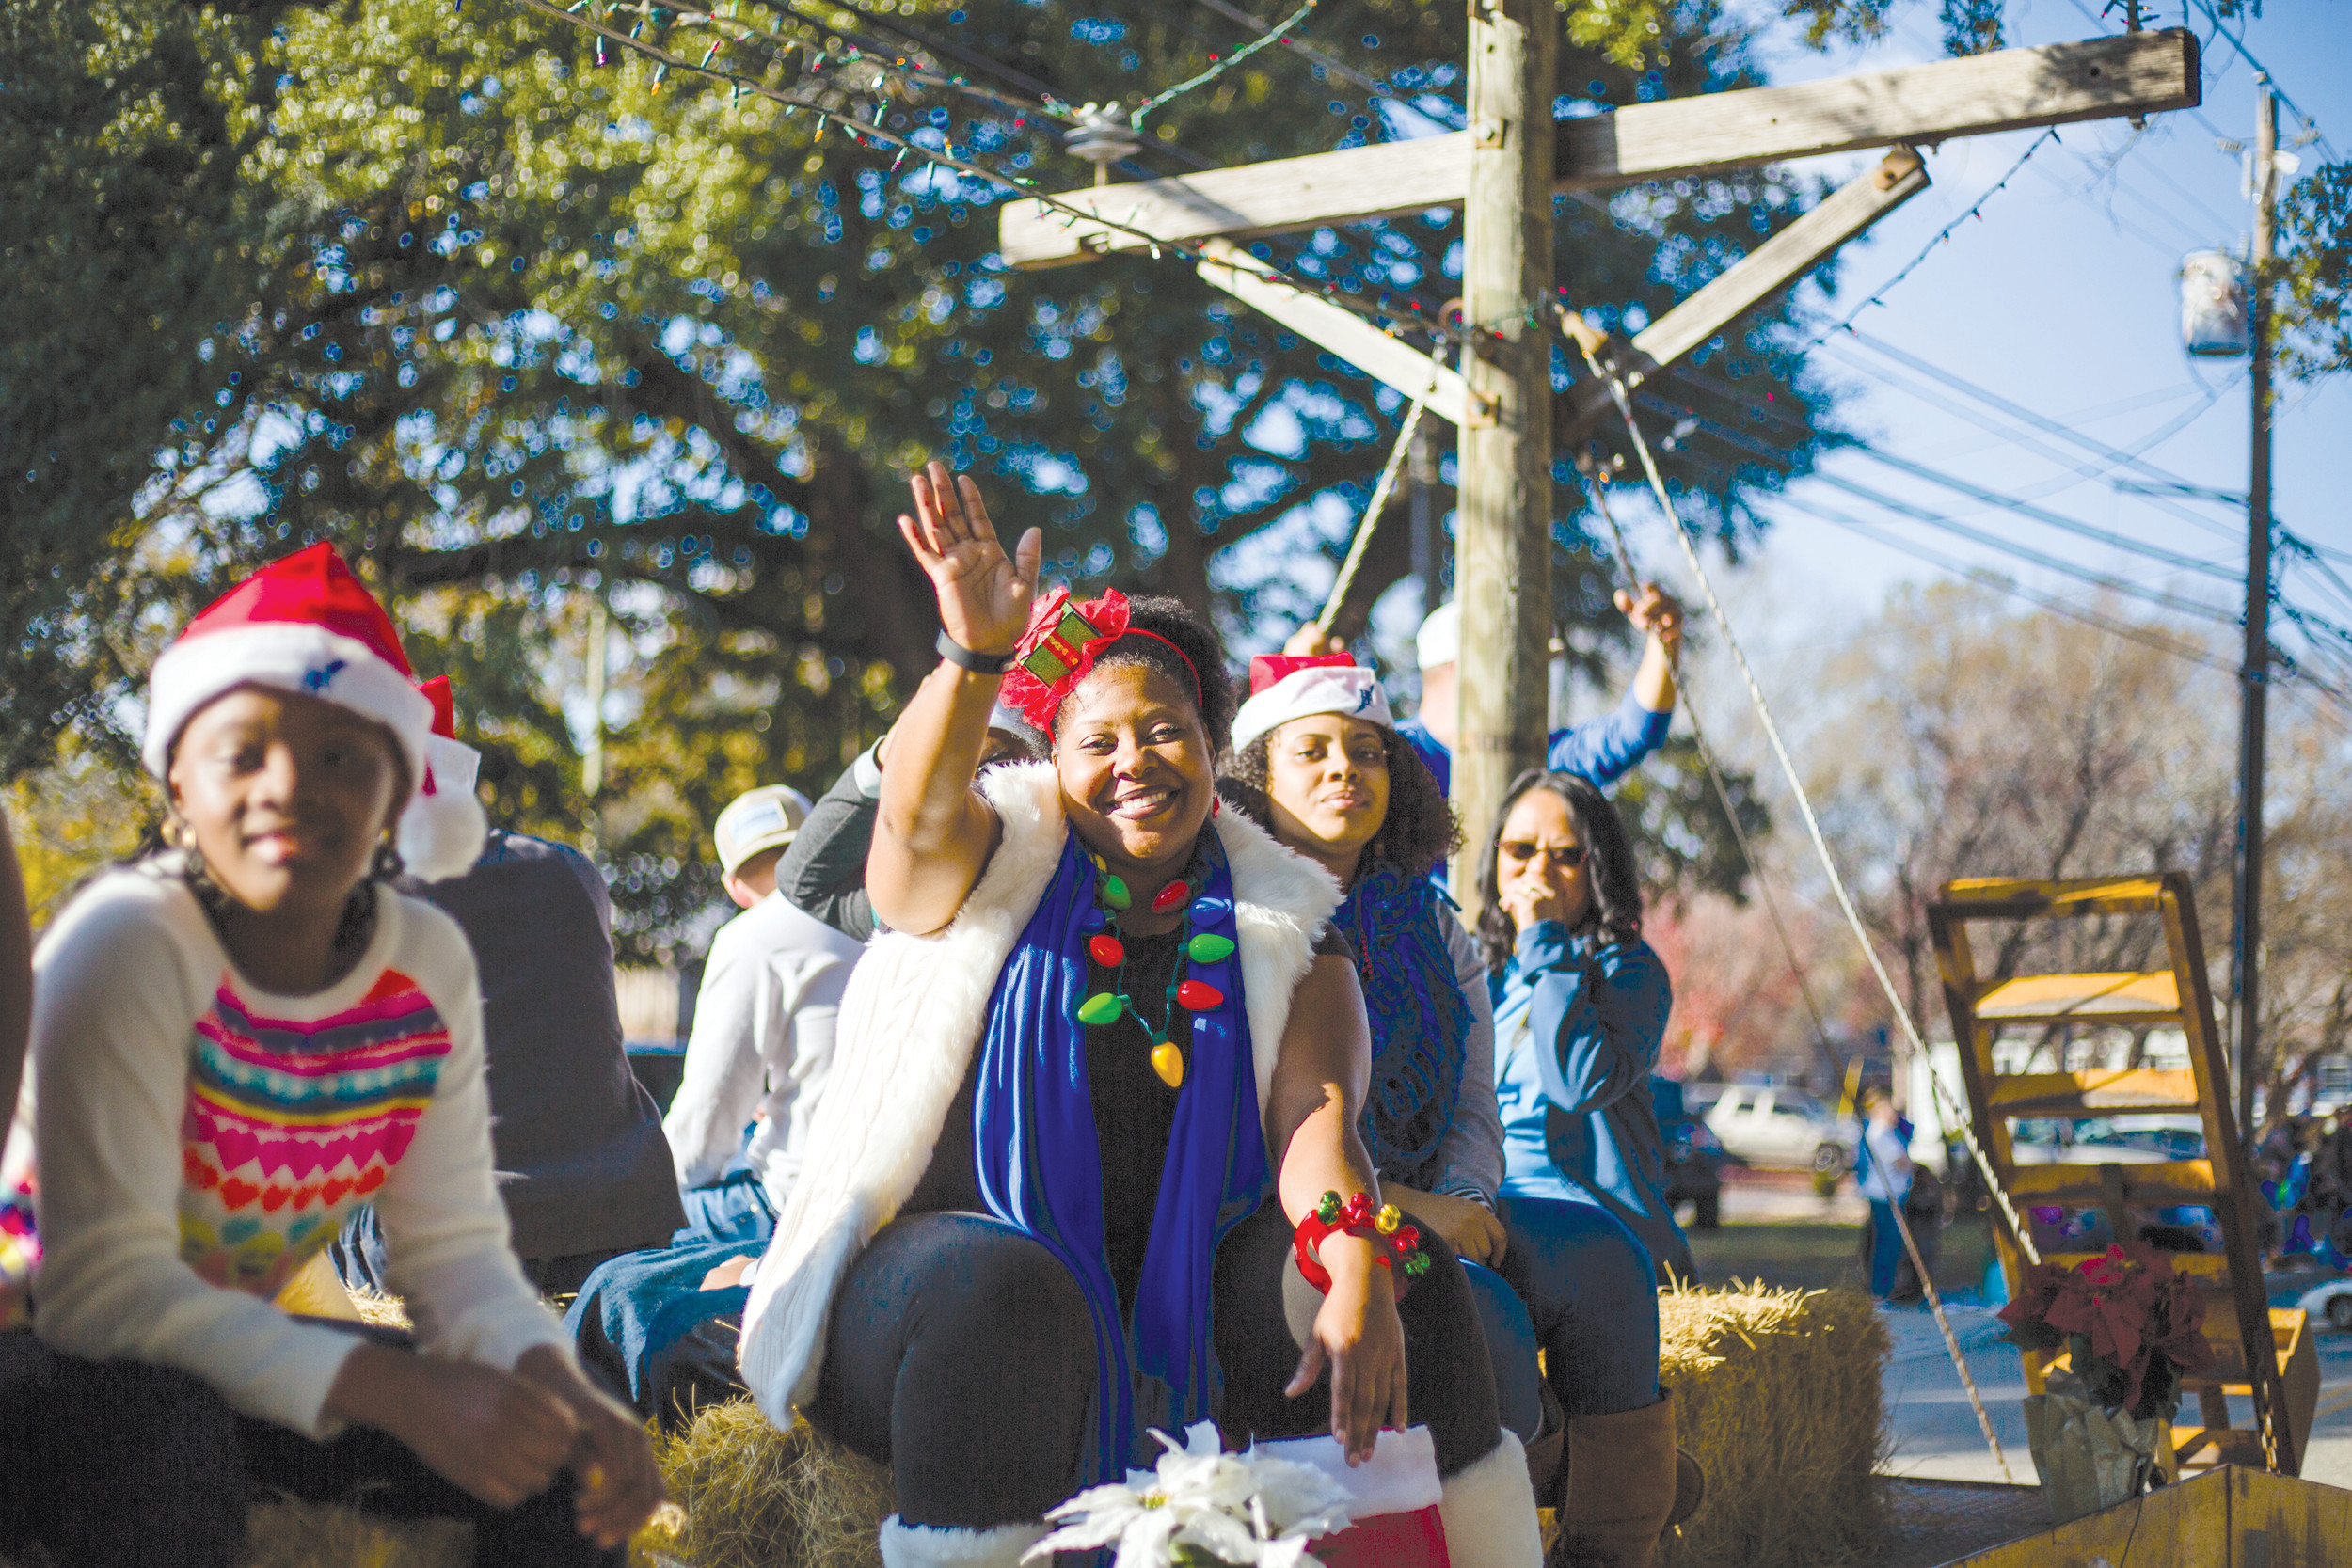 A woman waves from a float at the annual Sumter Christmas Parade on Sunday.